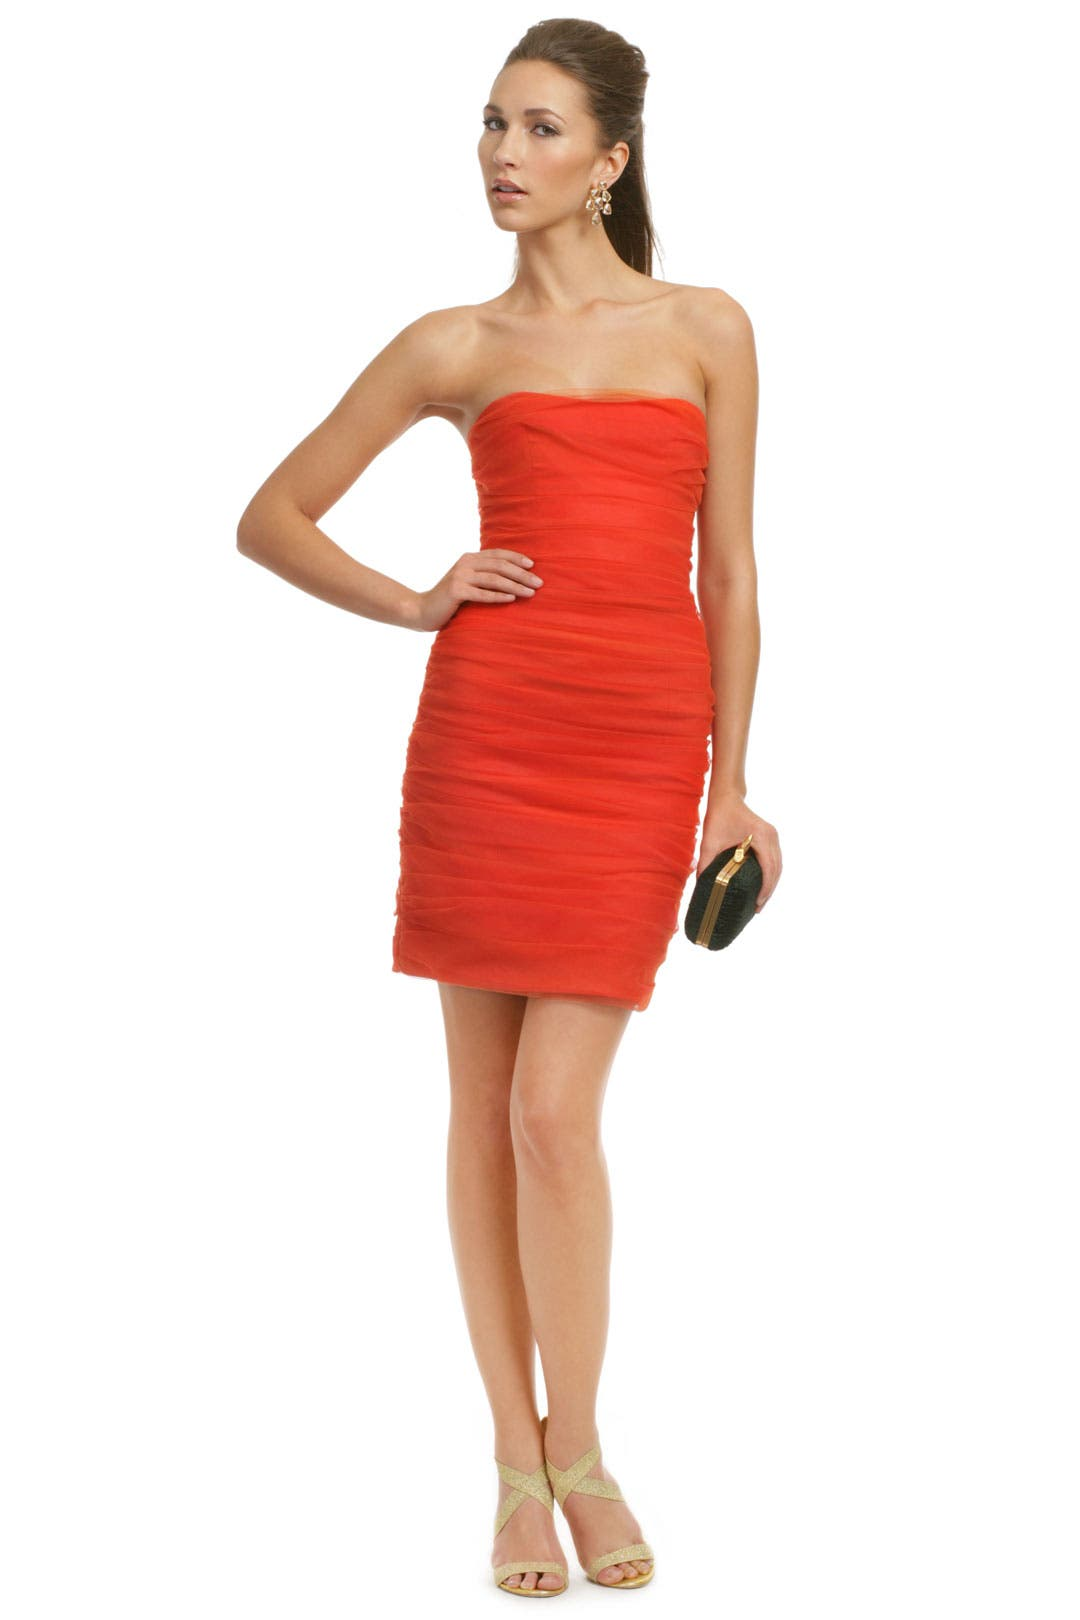 On Fire Dress by Christian Siriano